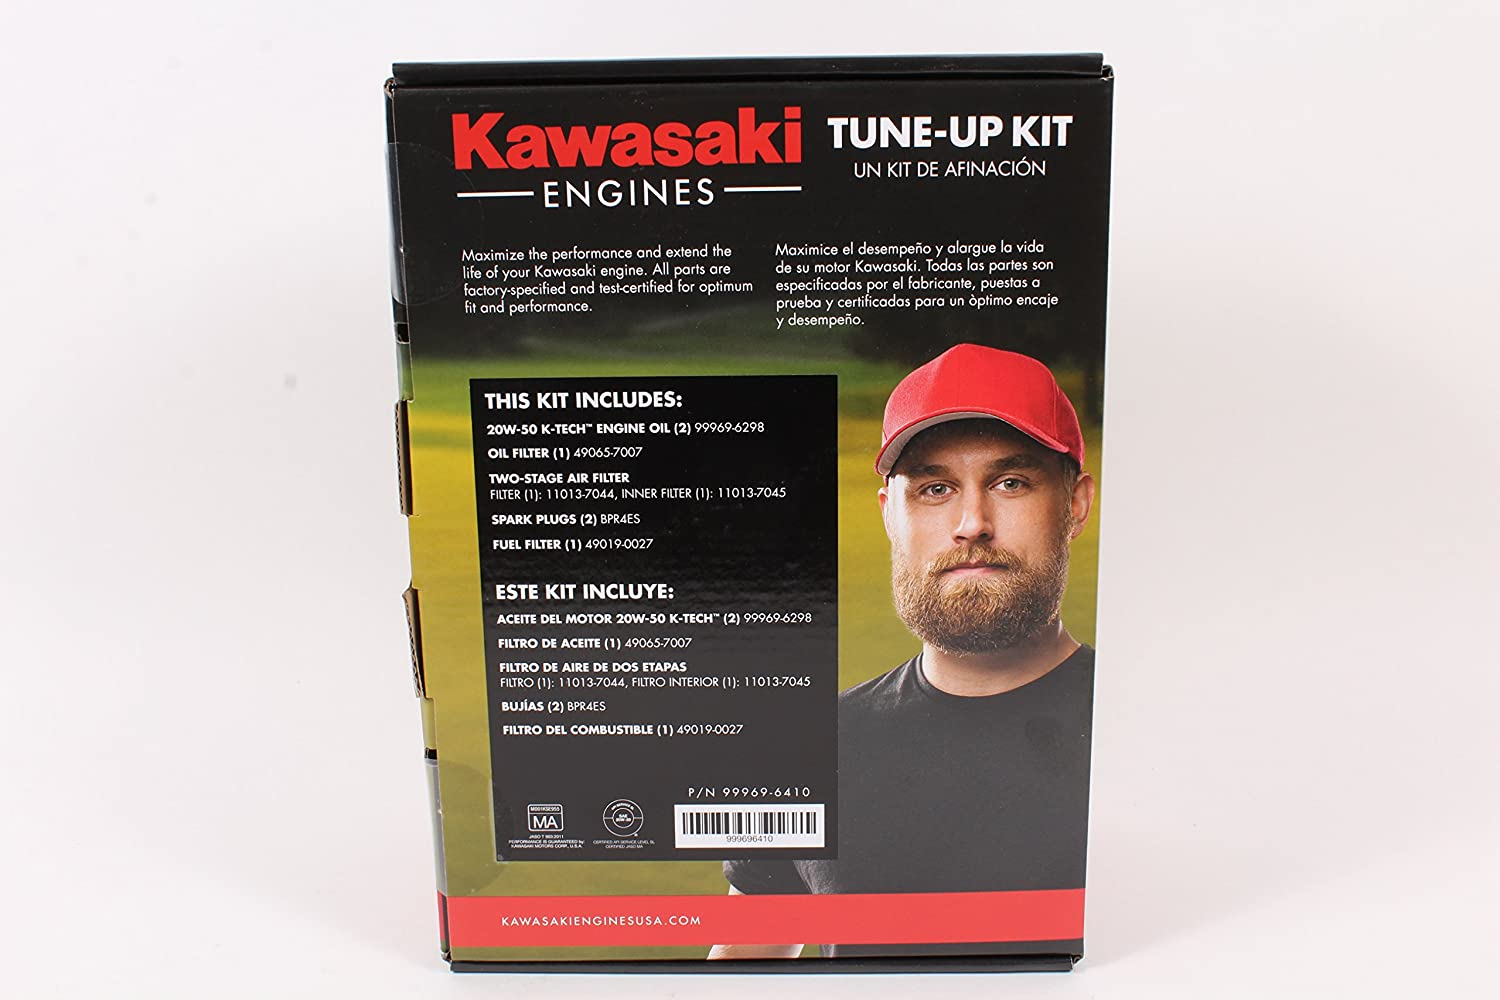 Amazon.com : Kawasaki Genuine 99969-6410 Tune Up Kit For FX651V FX691V FX730V 20W-50 : Garden & Outdoor